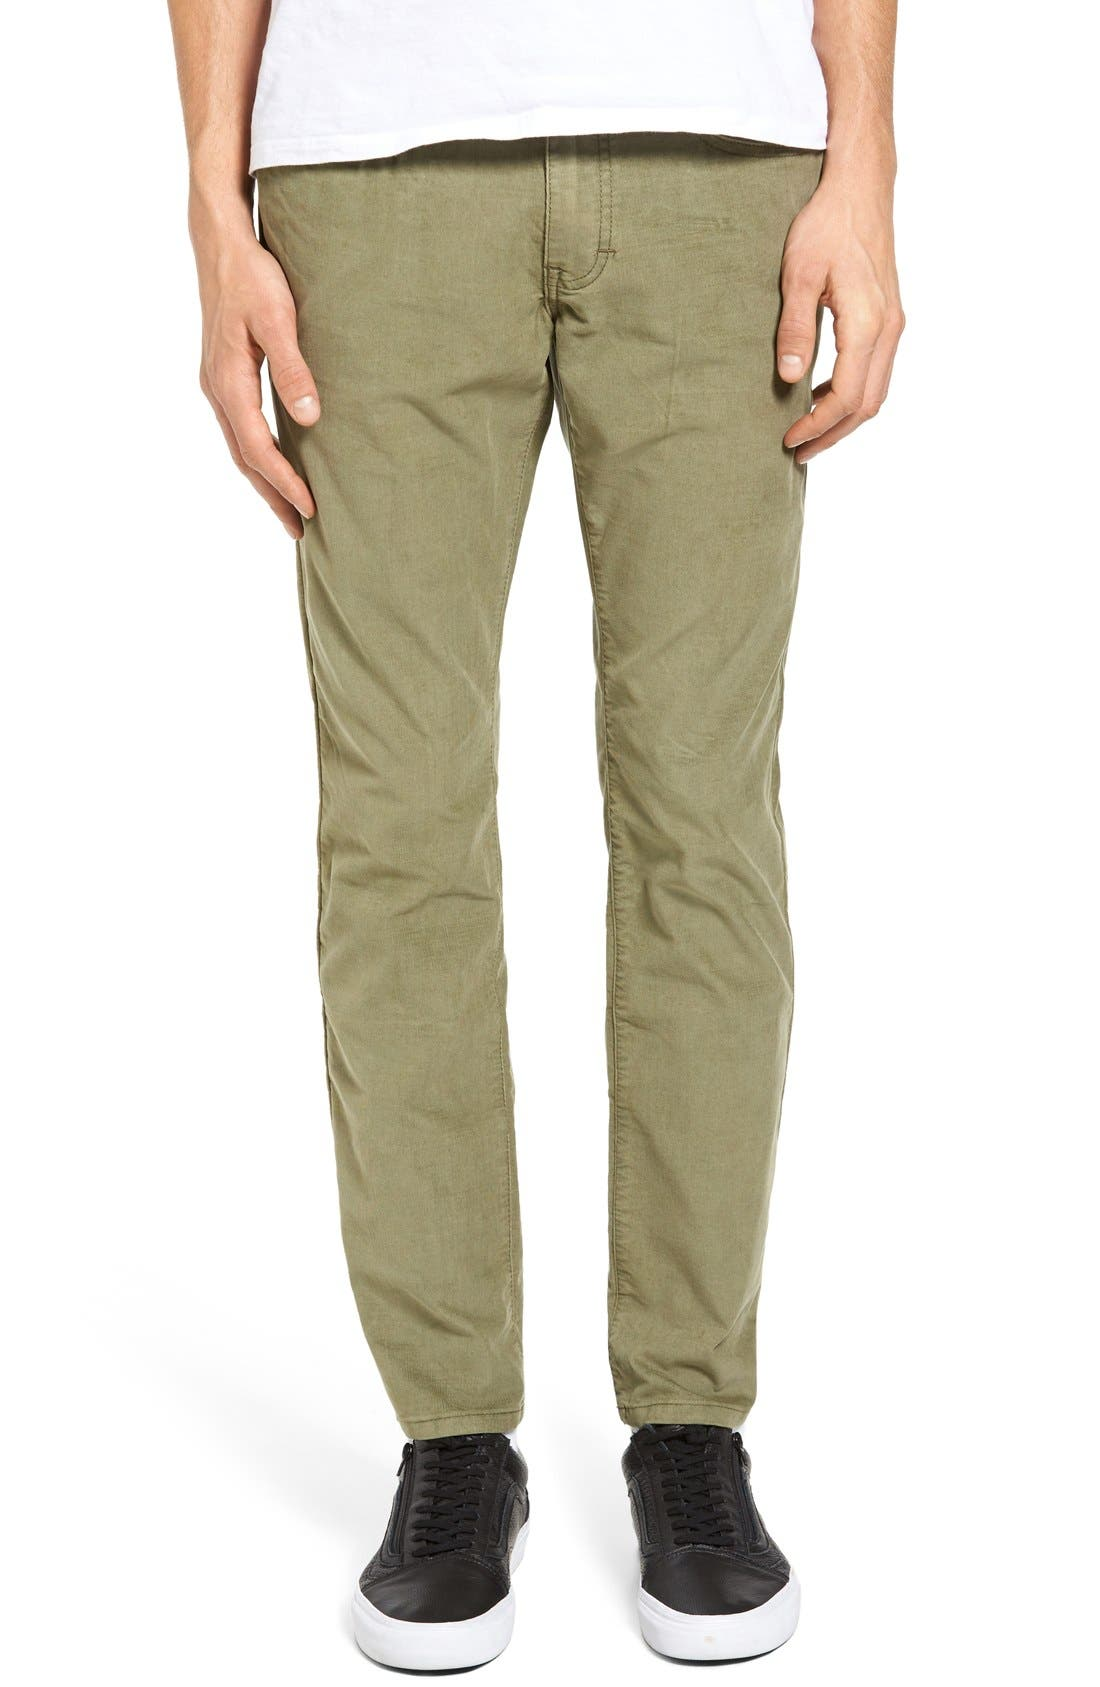 Ezekiel Bryce Chopper Slim Fit Corduroy Pants